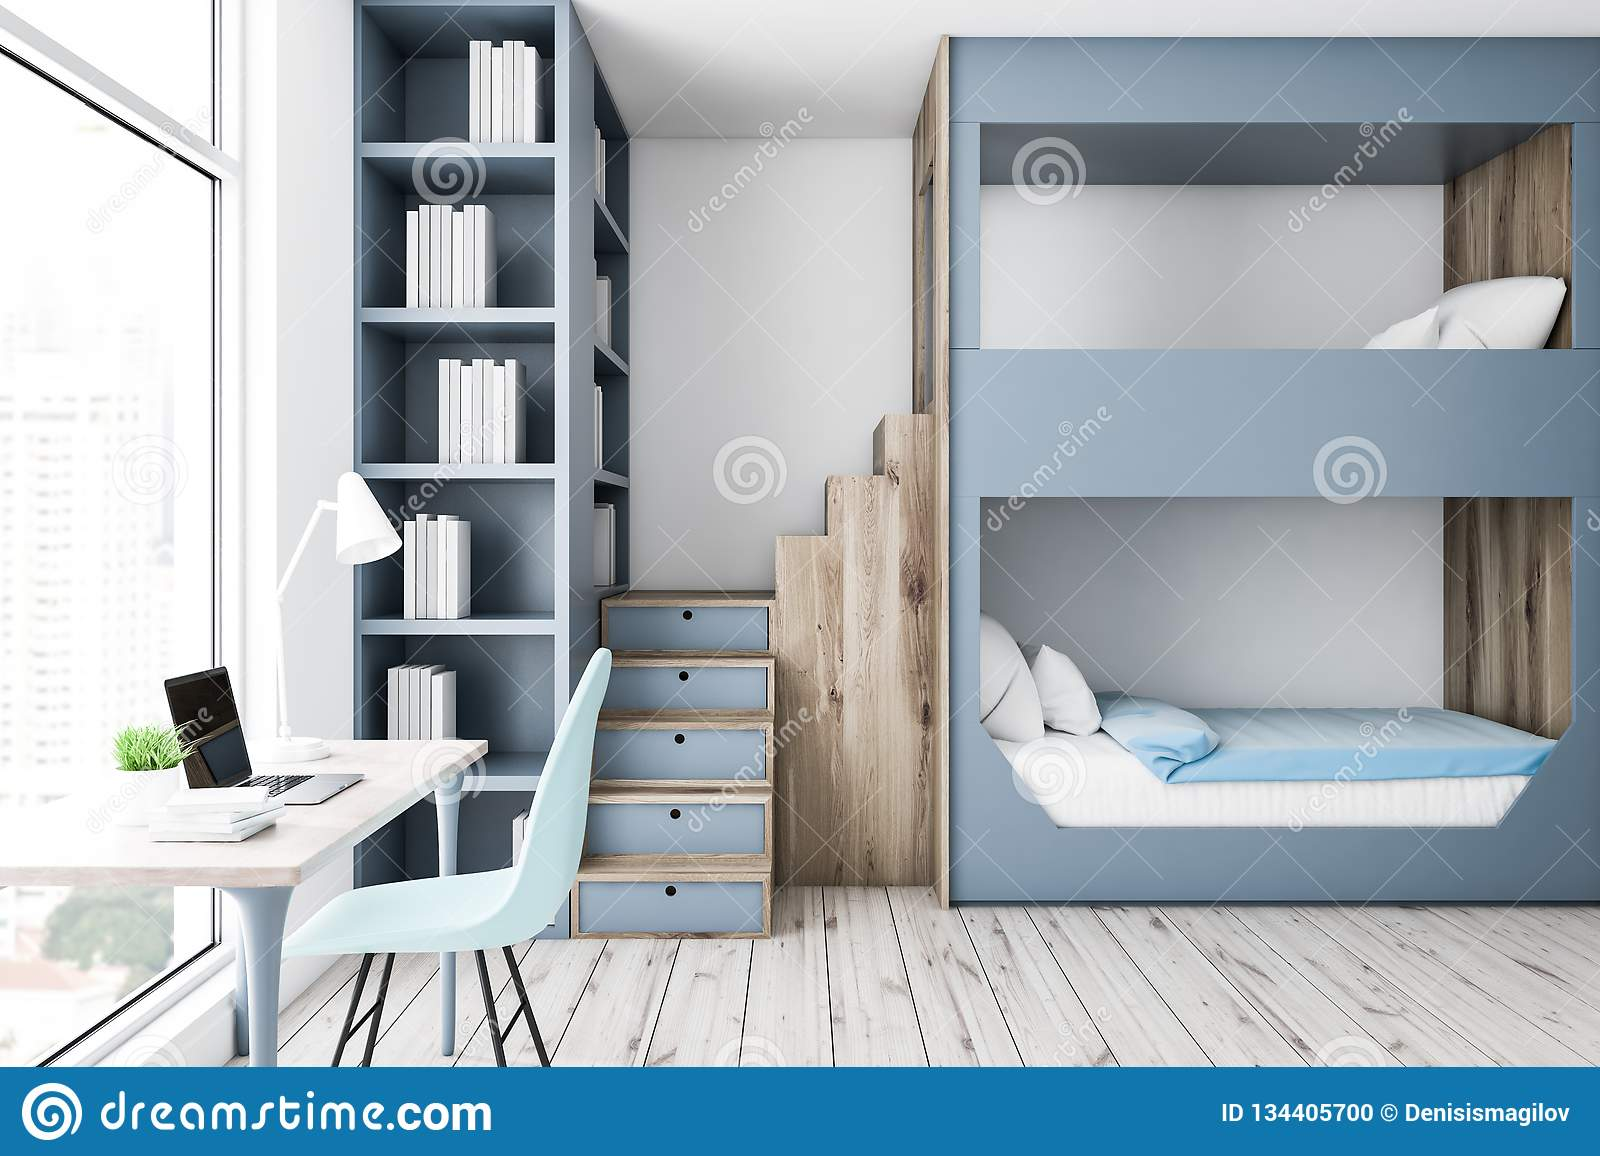 Picture of: Gray Bunk Bed Bedroom Interior Computer Desk Stock Illustration Illustration Of Chair Furniture 134405700